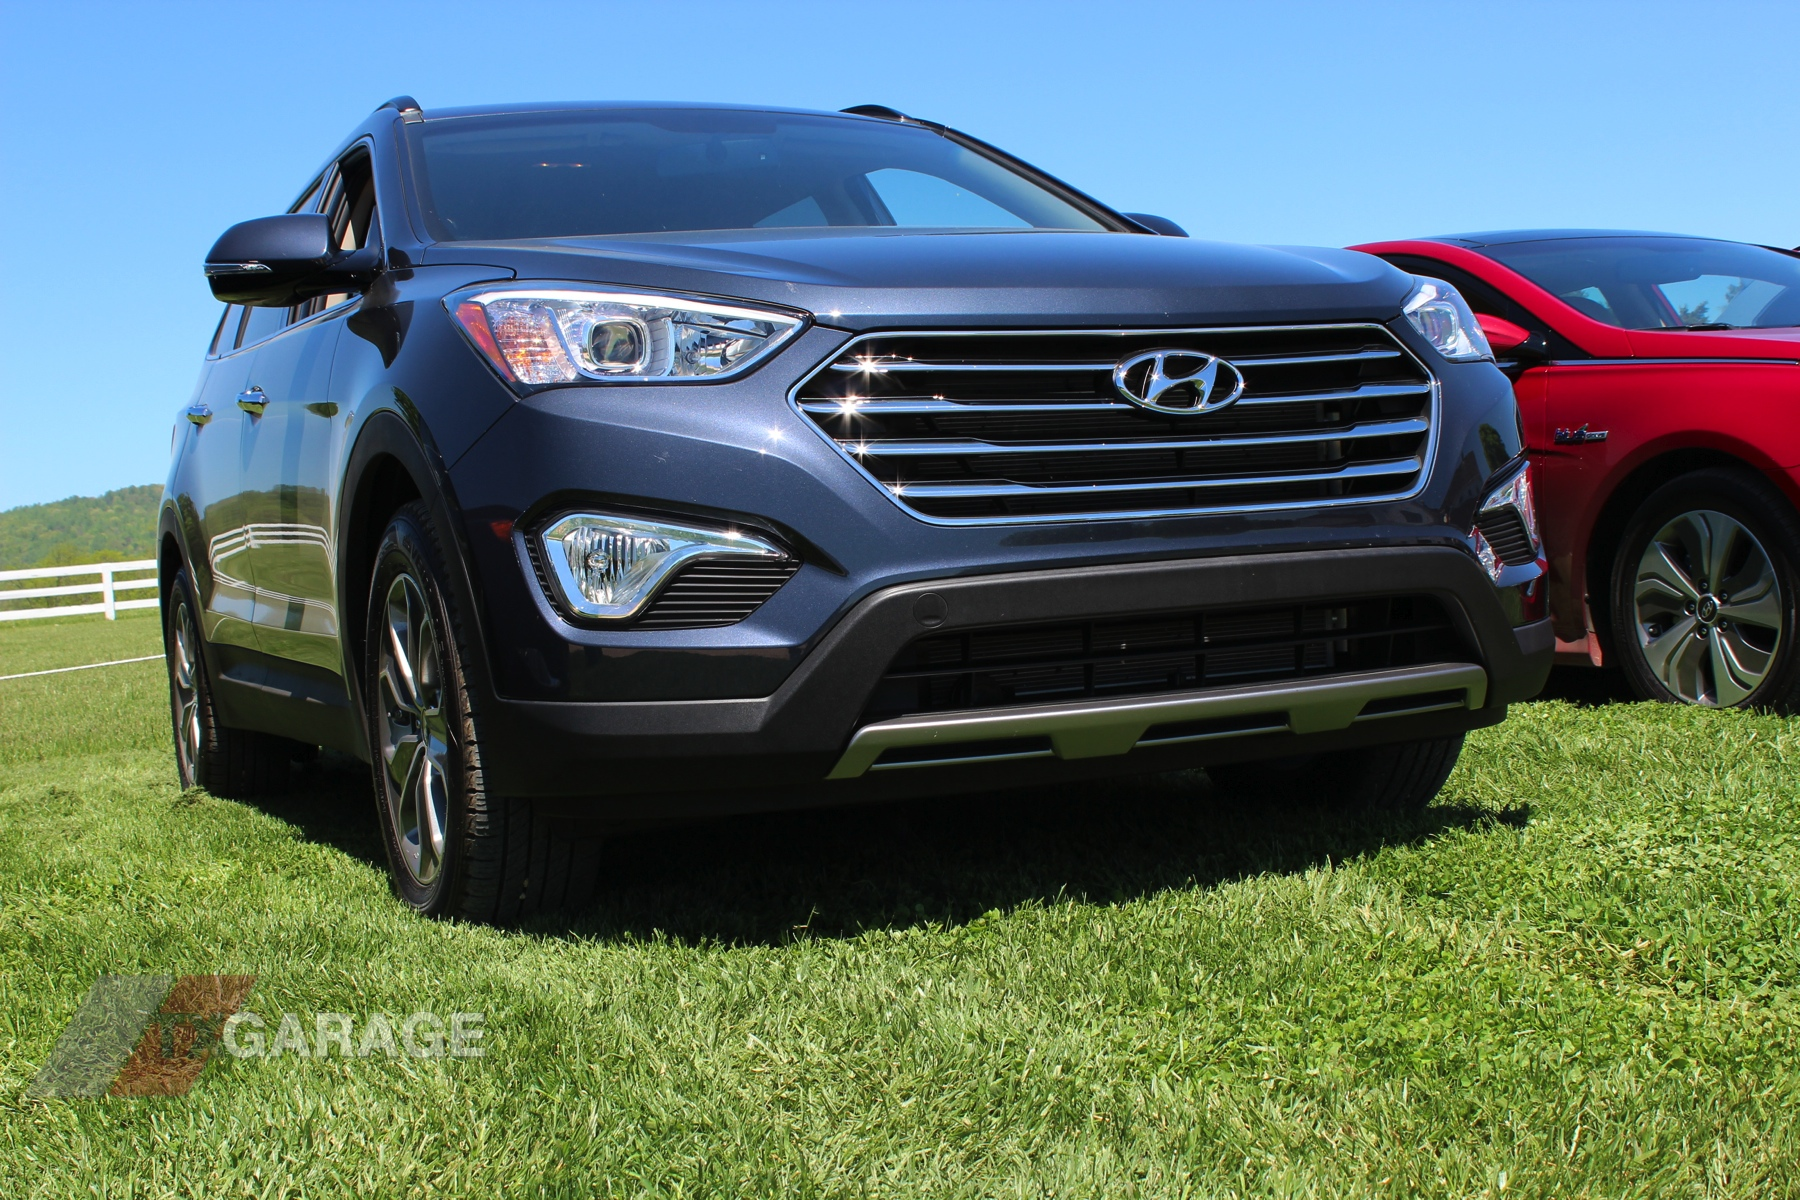 quick drive review with the 2013 hyundai santa fe txgarage. Black Bedroom Furniture Sets. Home Design Ideas